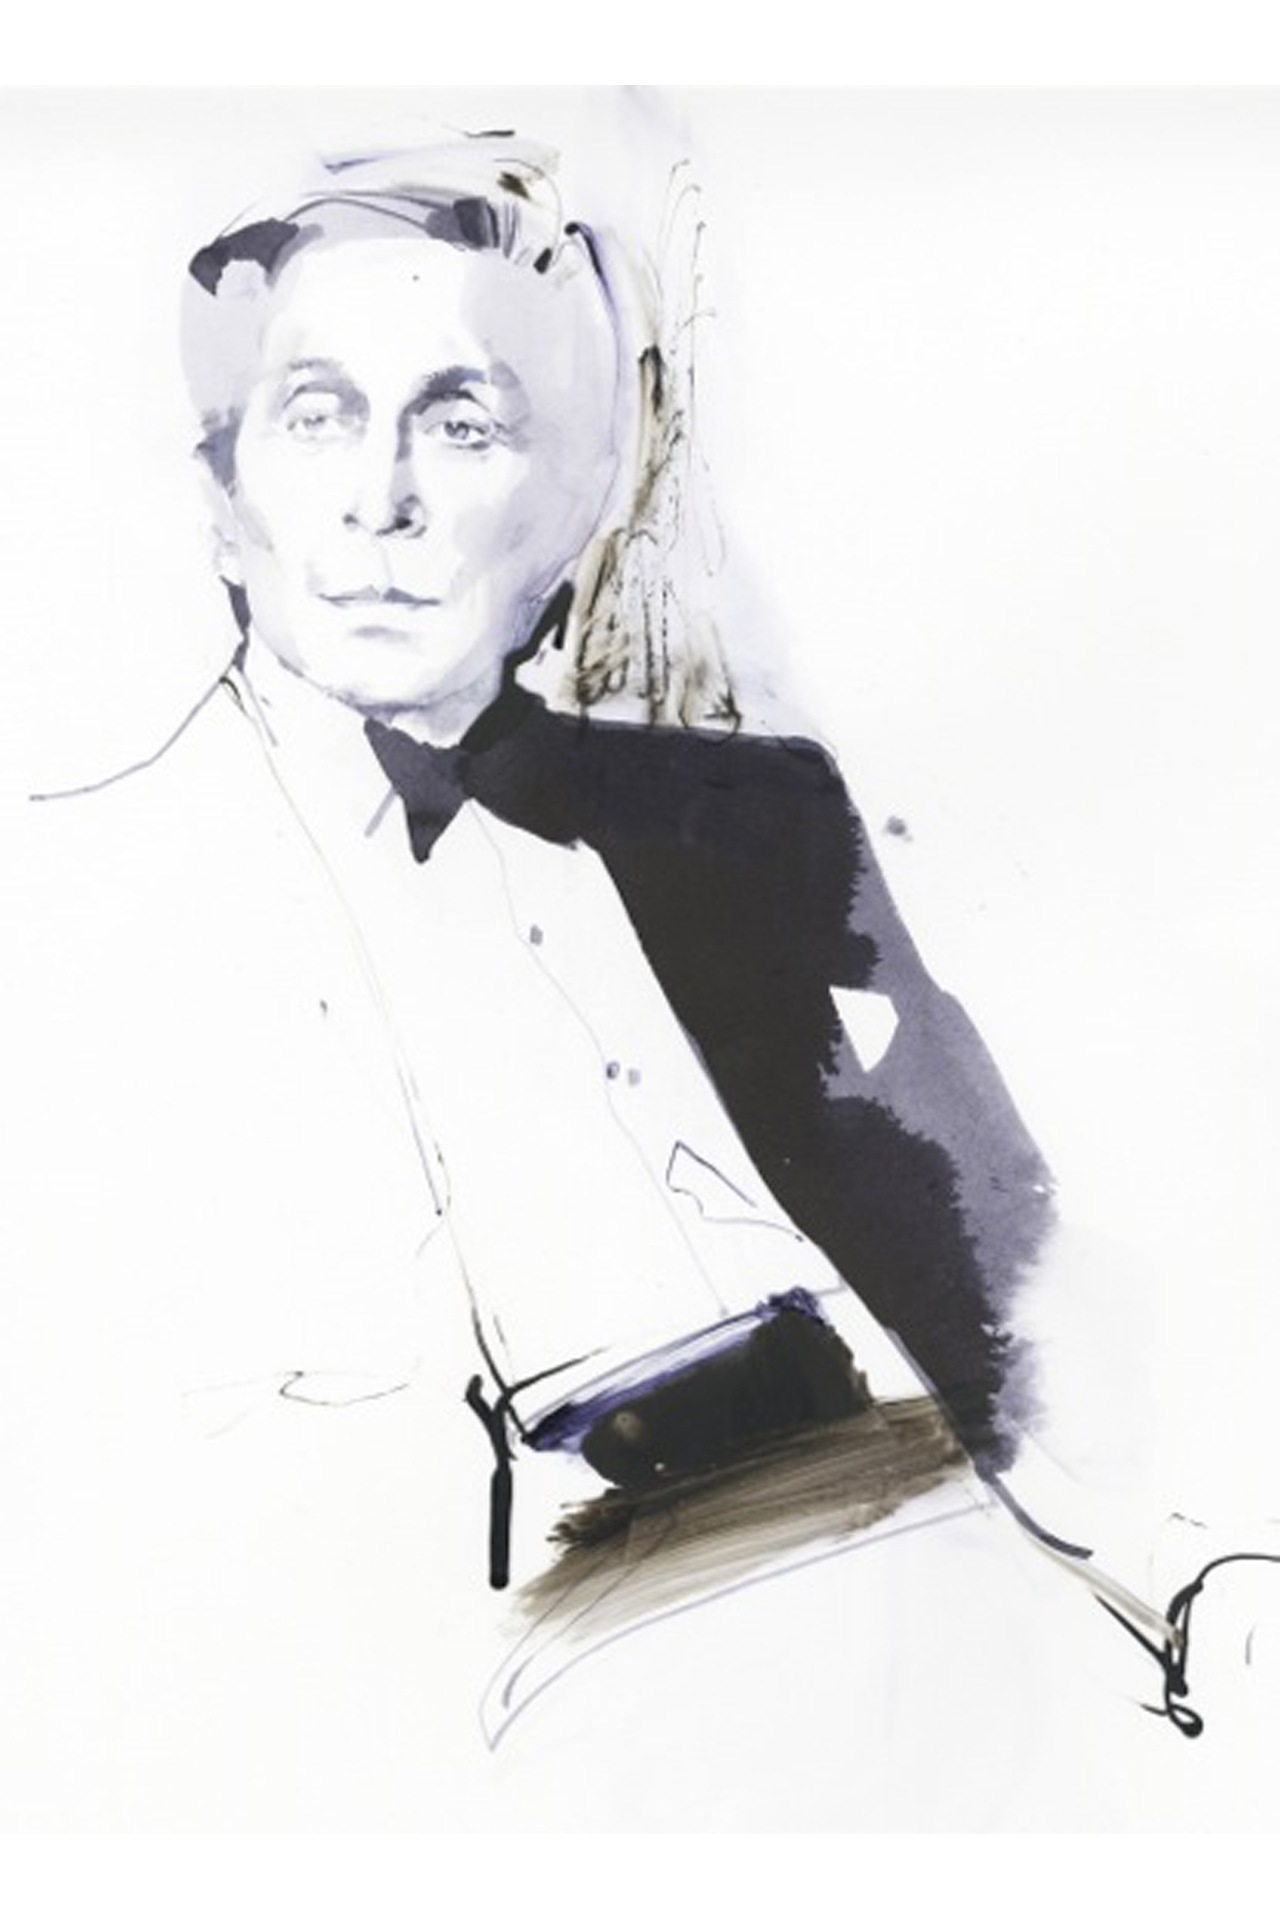 Portrait of Mr. Valentino drawn by fashion illustrator David Downton, who is famous for his calligraphic artworks